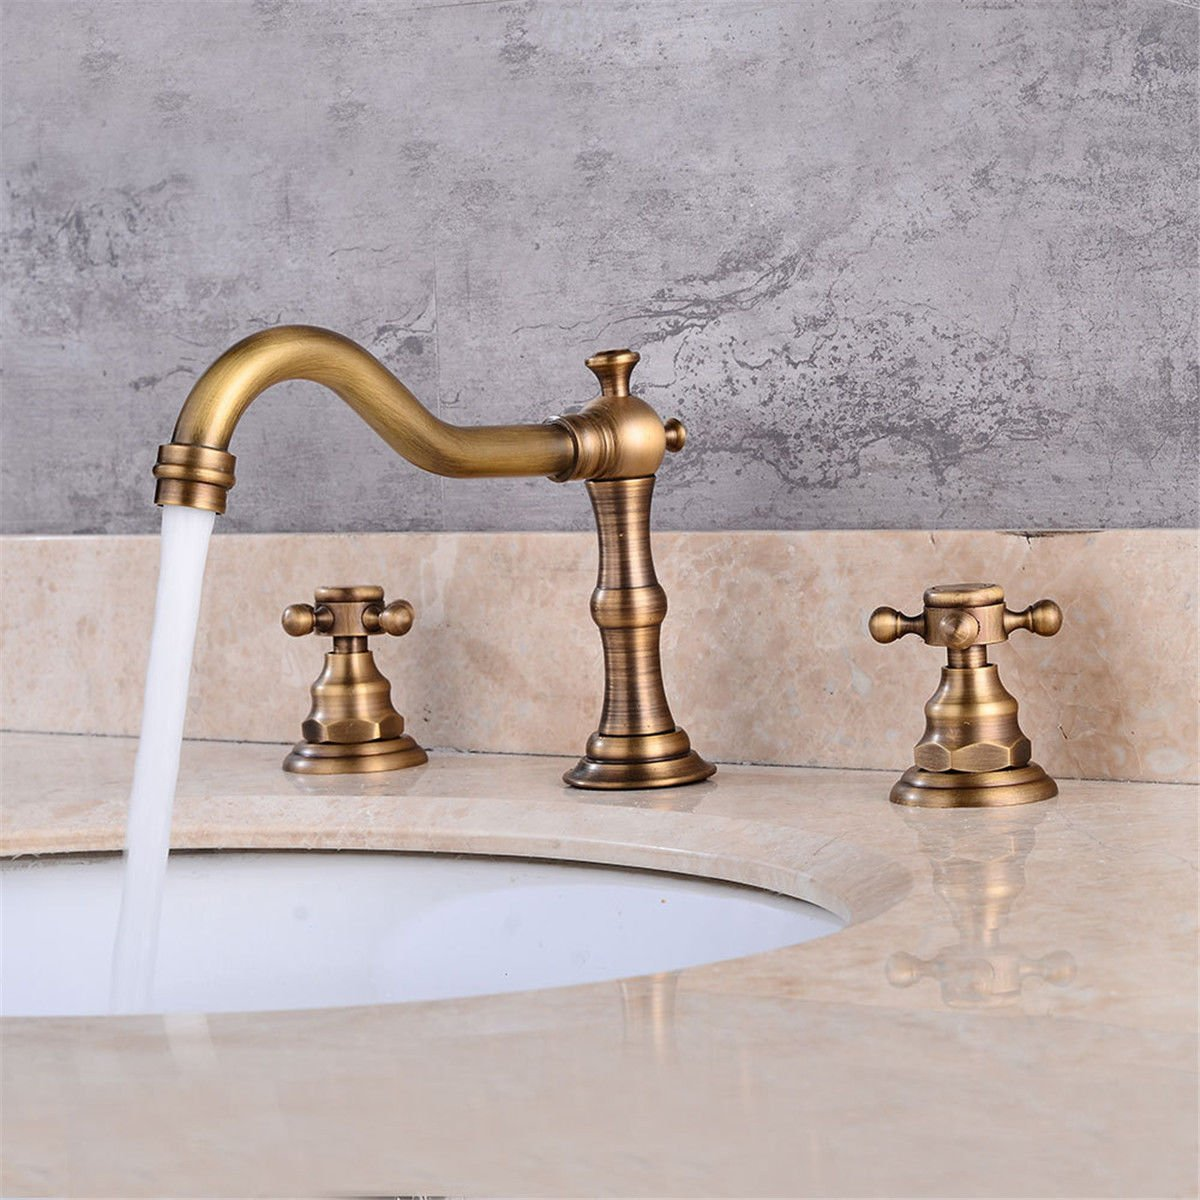 Bathroom Kitchen Sink Faucet, Basin Sink Mixer Tap Sink Brass Three Hole Retro Double Double On Hot and Cold Water Bathroom Faucet Basin Taps